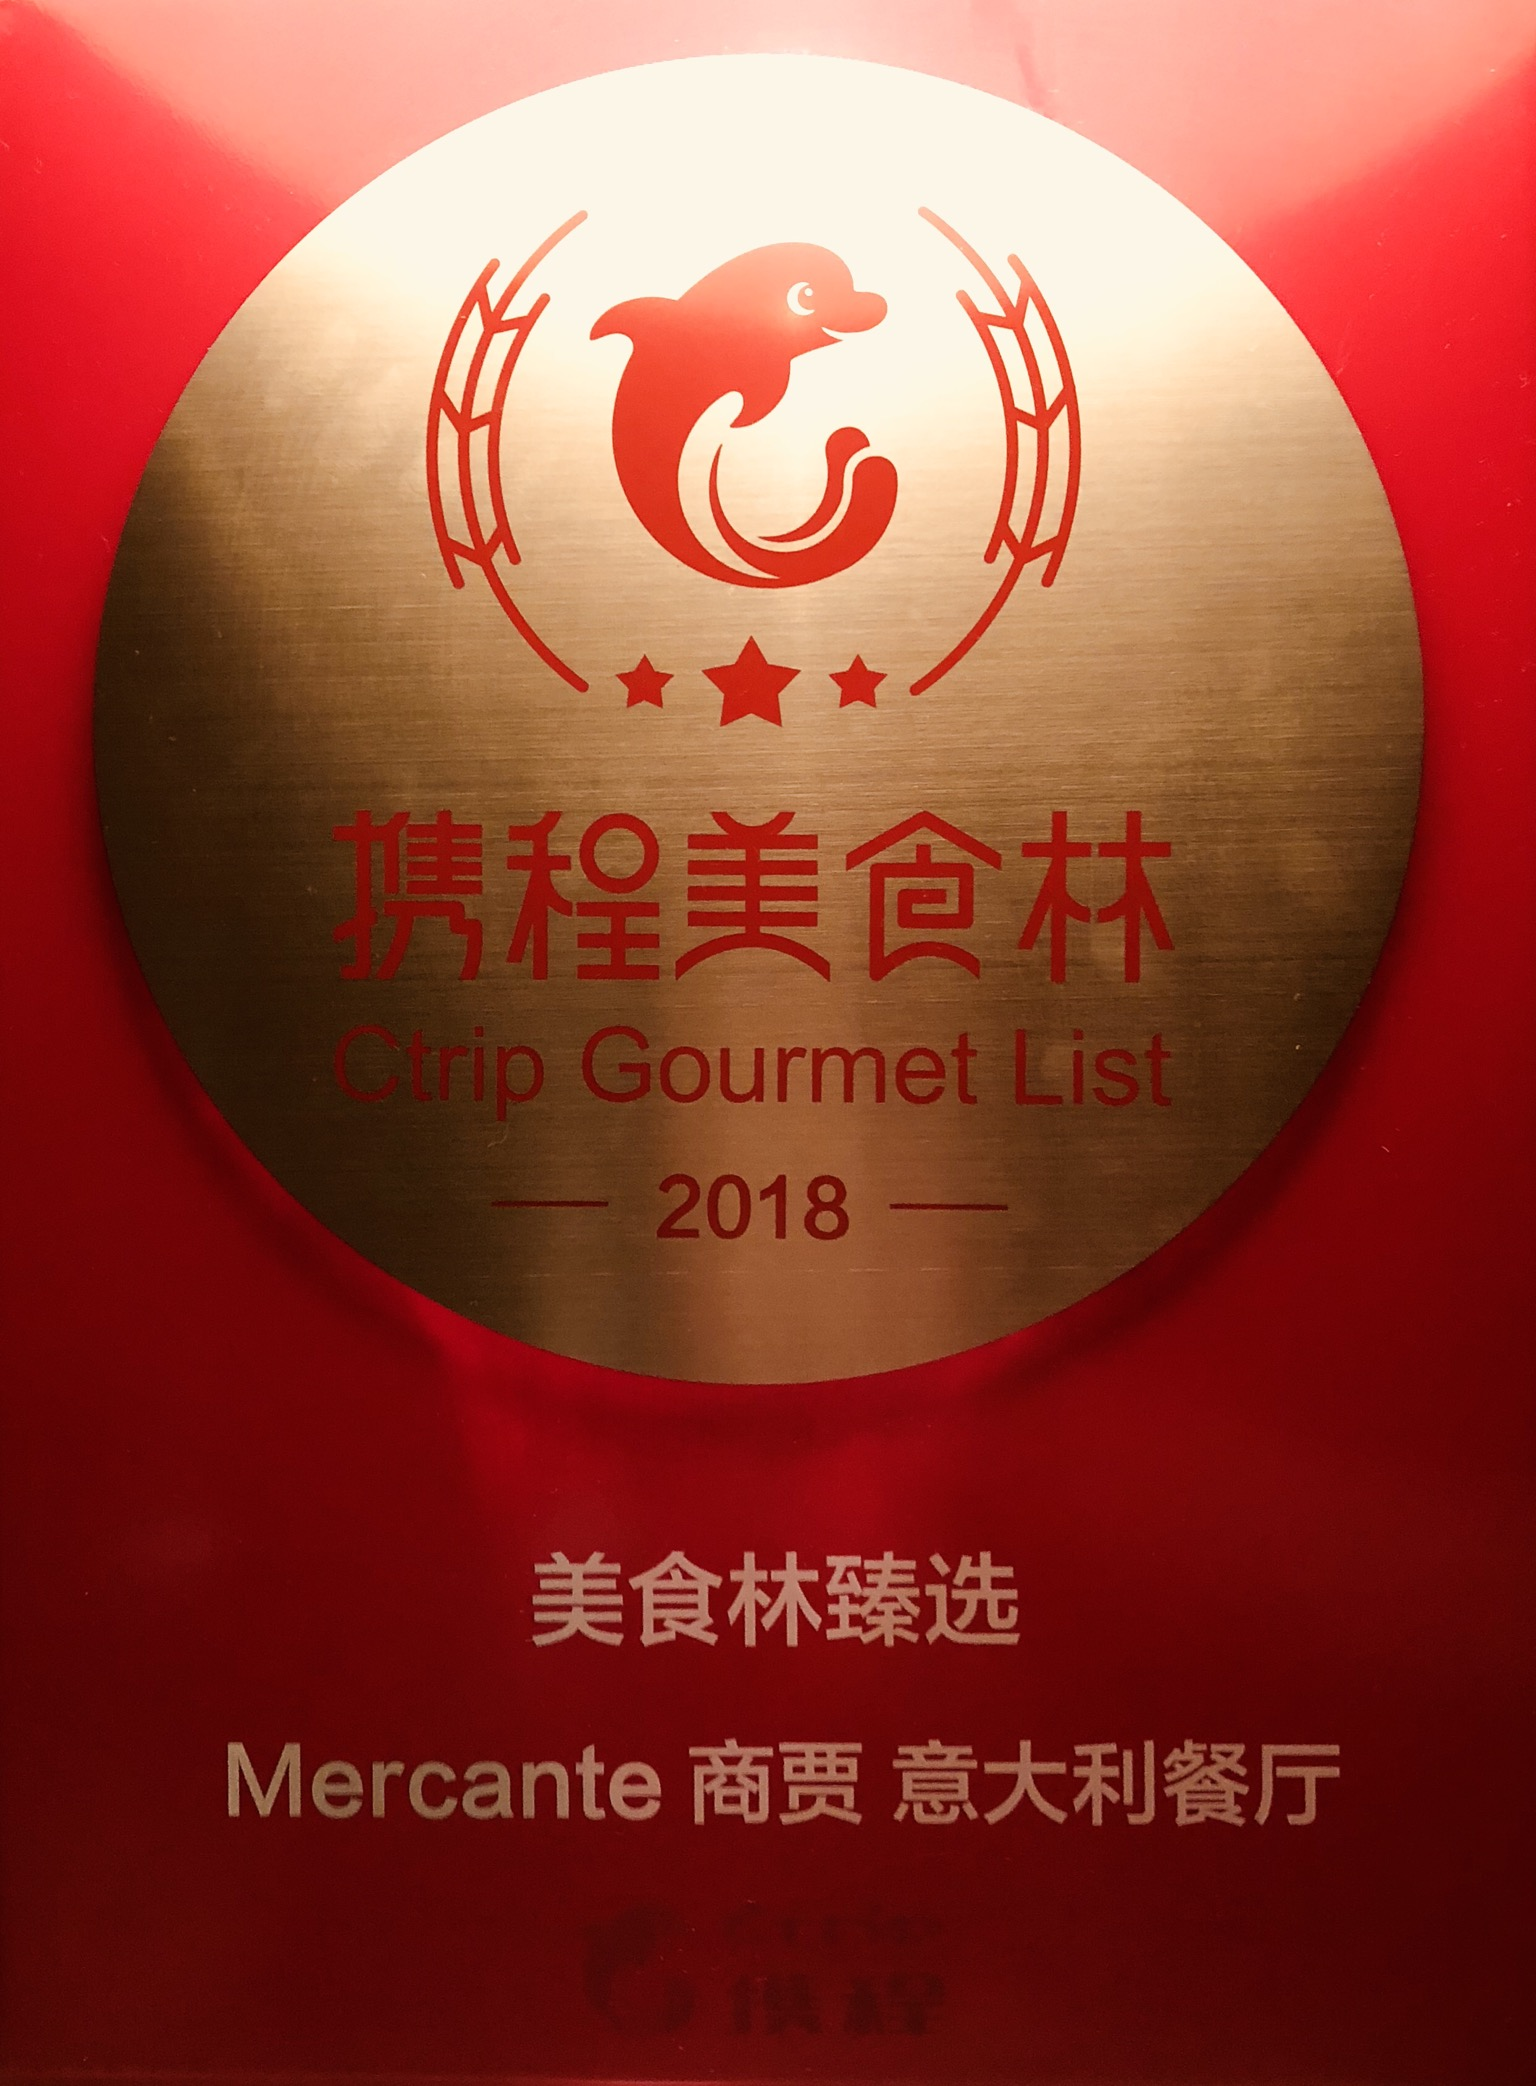 Ctrip Gourmet Mercante.jpeg